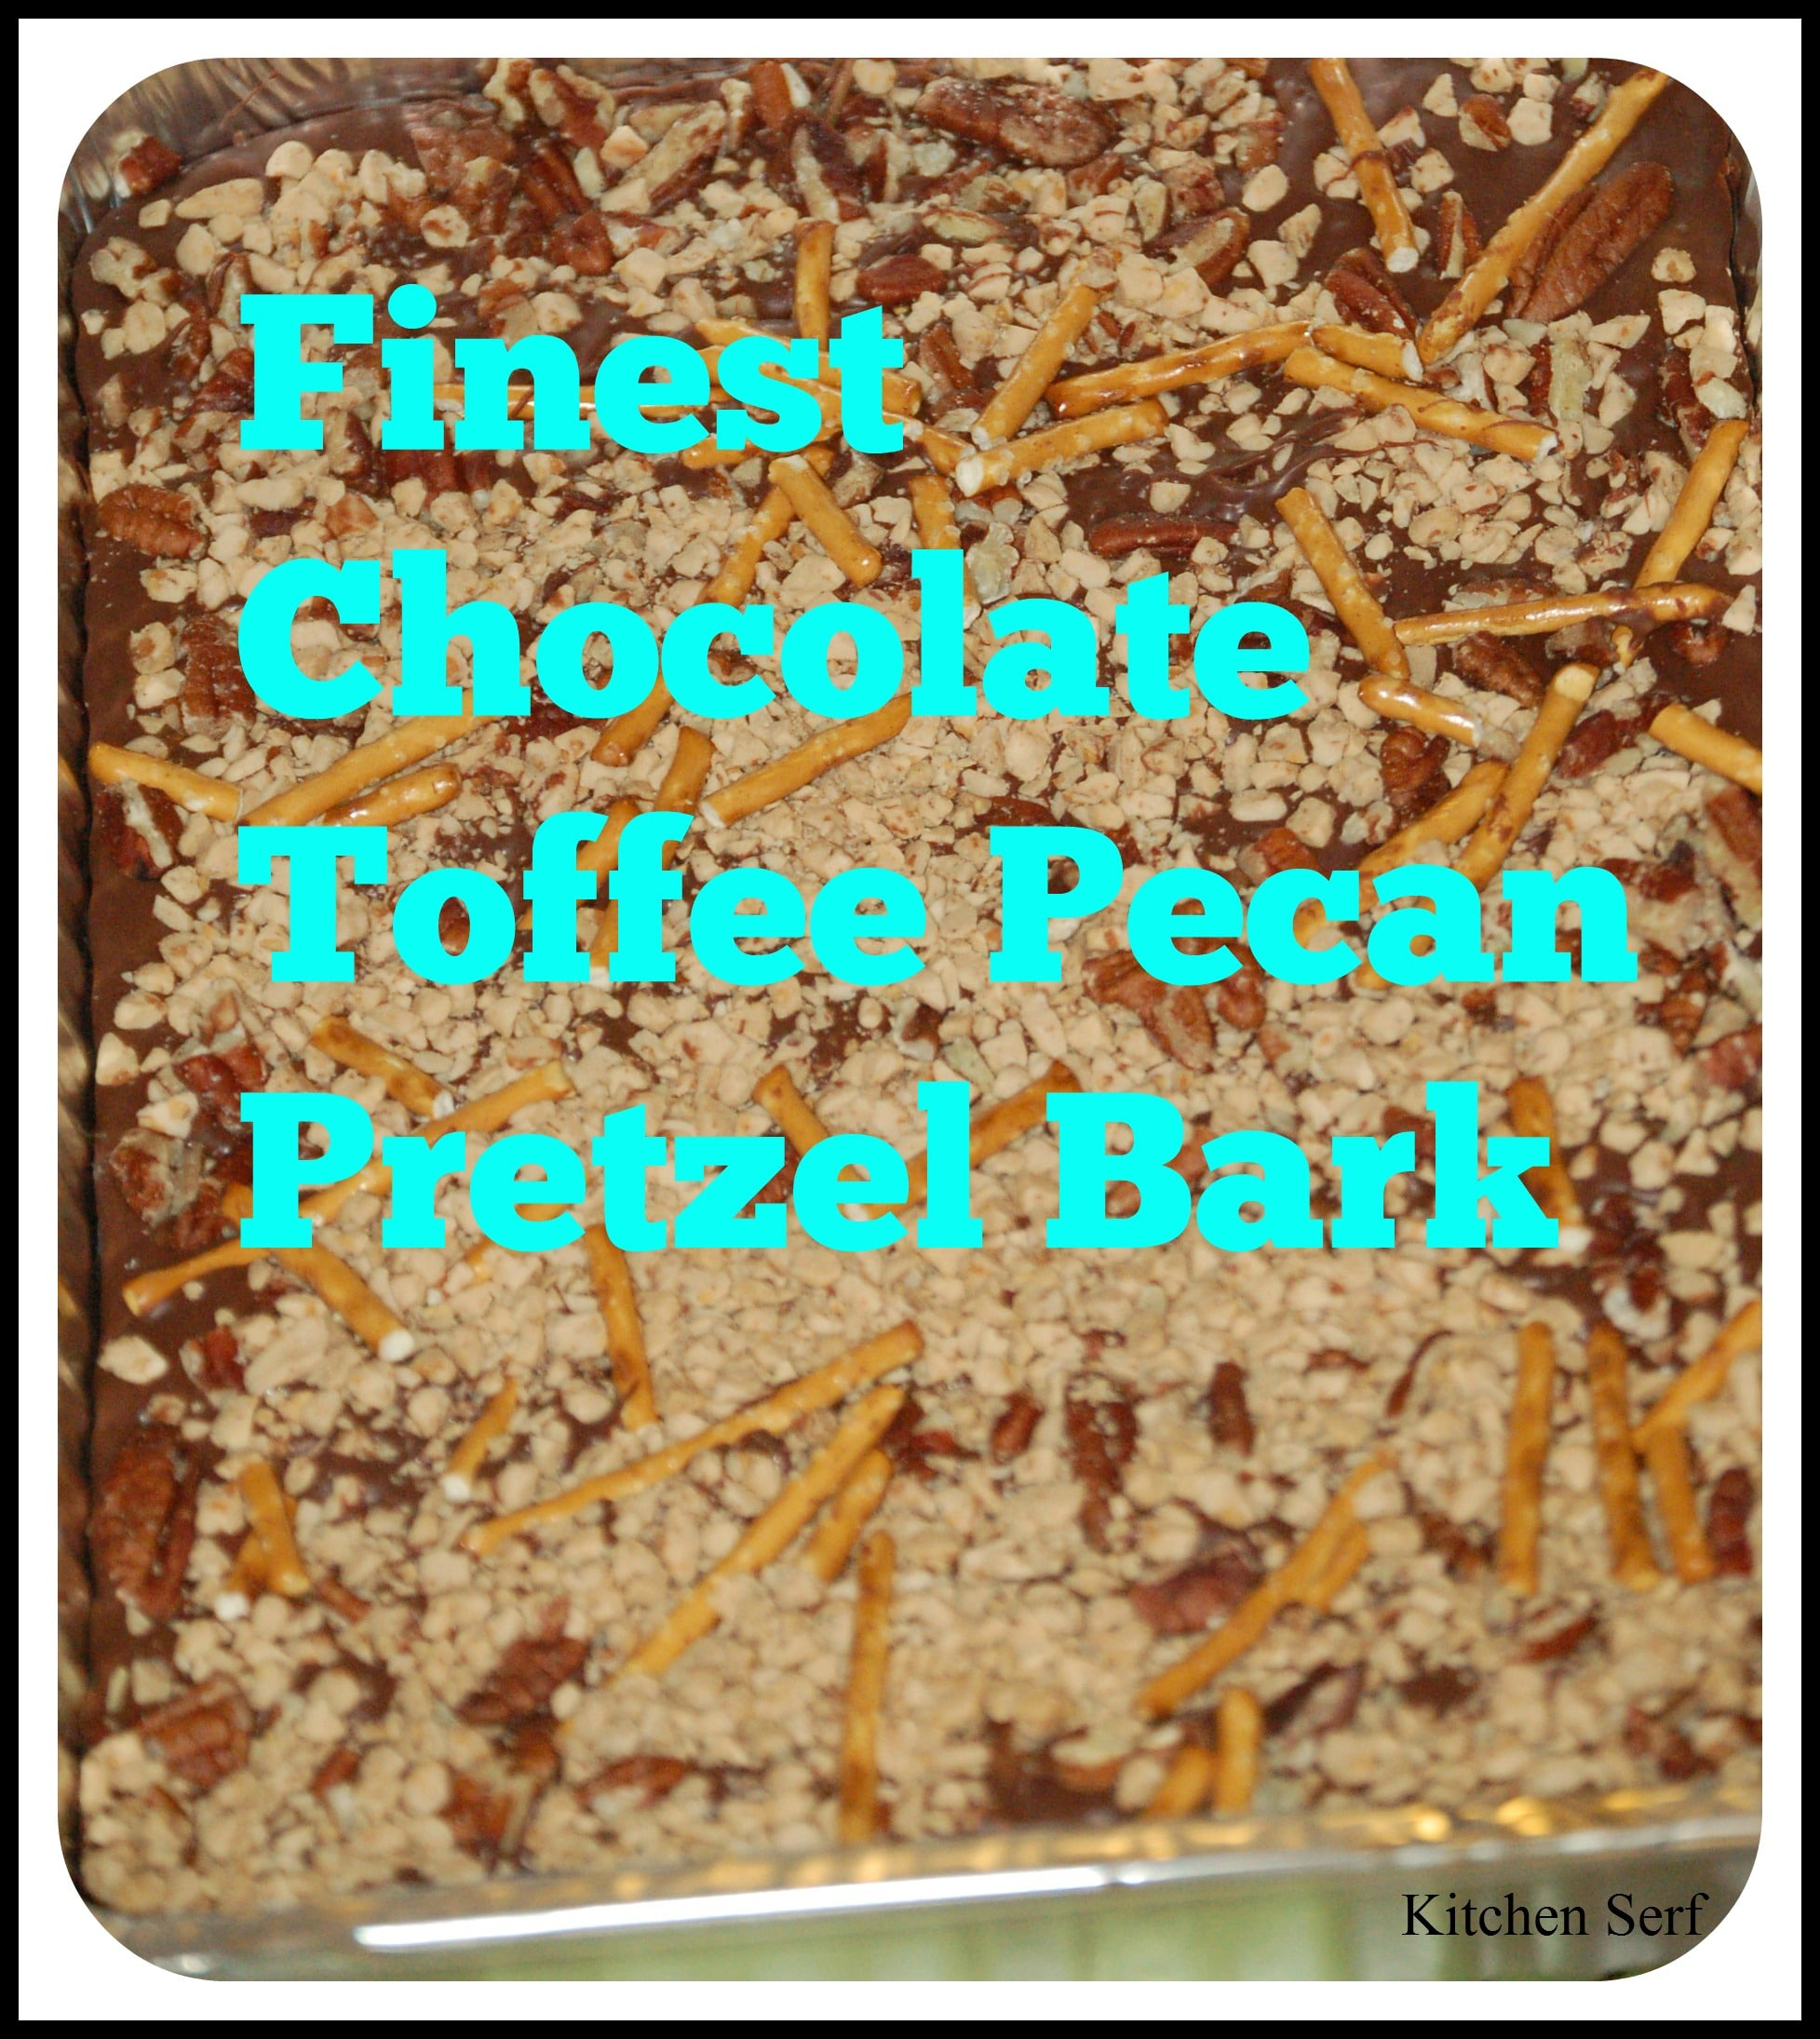 How to make Finest Chocolate Toffee Pecan Pretzel Bark